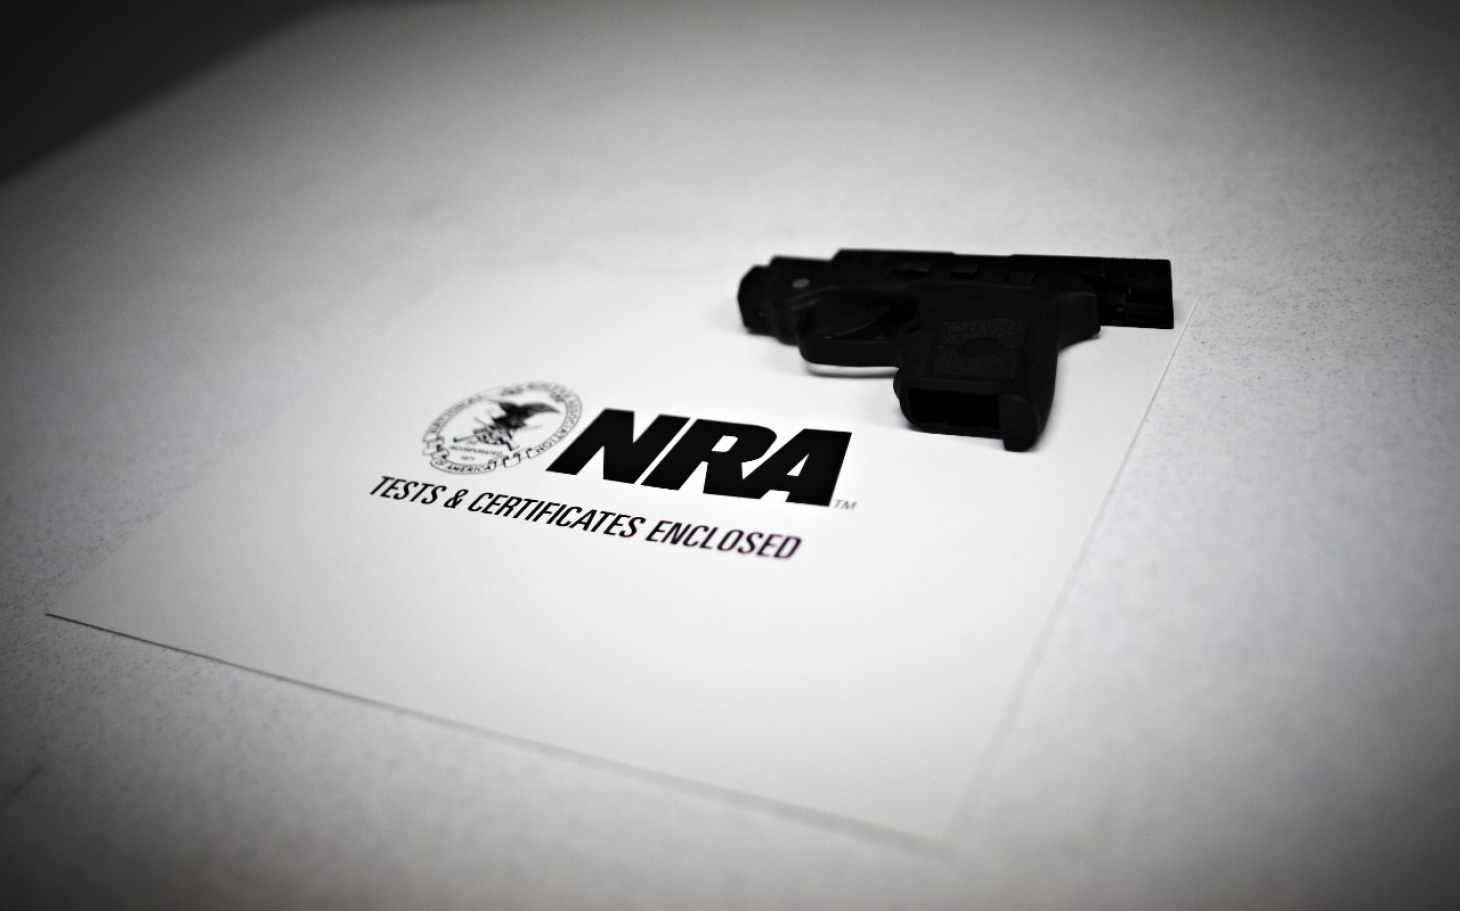 nra research papers What actions does the nra take to try to influence policy and the public agenda write a paper on the nra university, research paper, term paper or just a high.